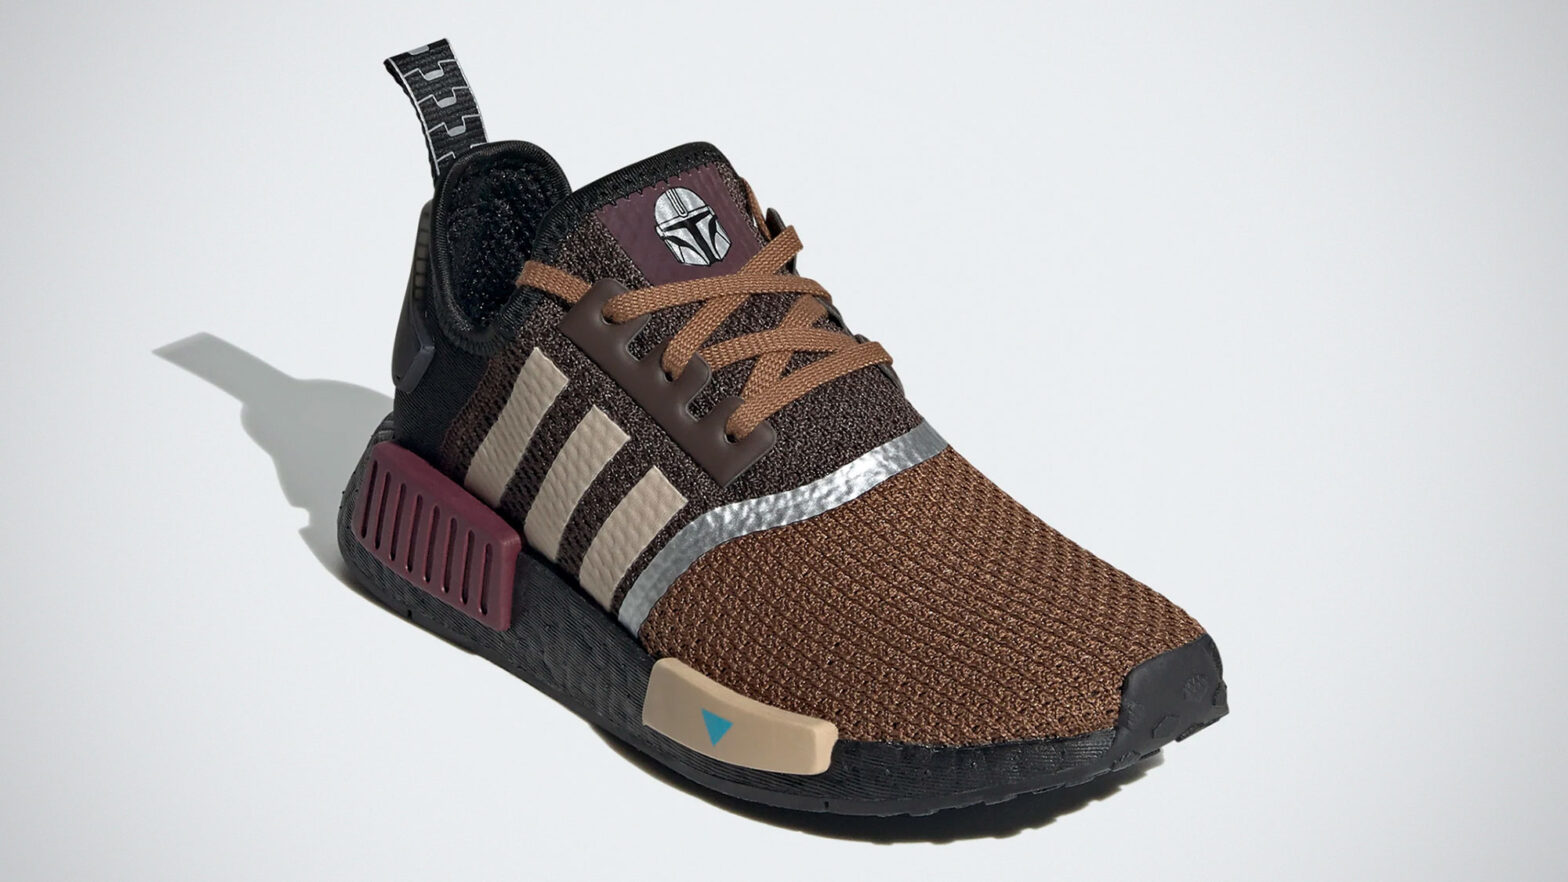 adidas NMD_R1 The Mandalorian Shoes